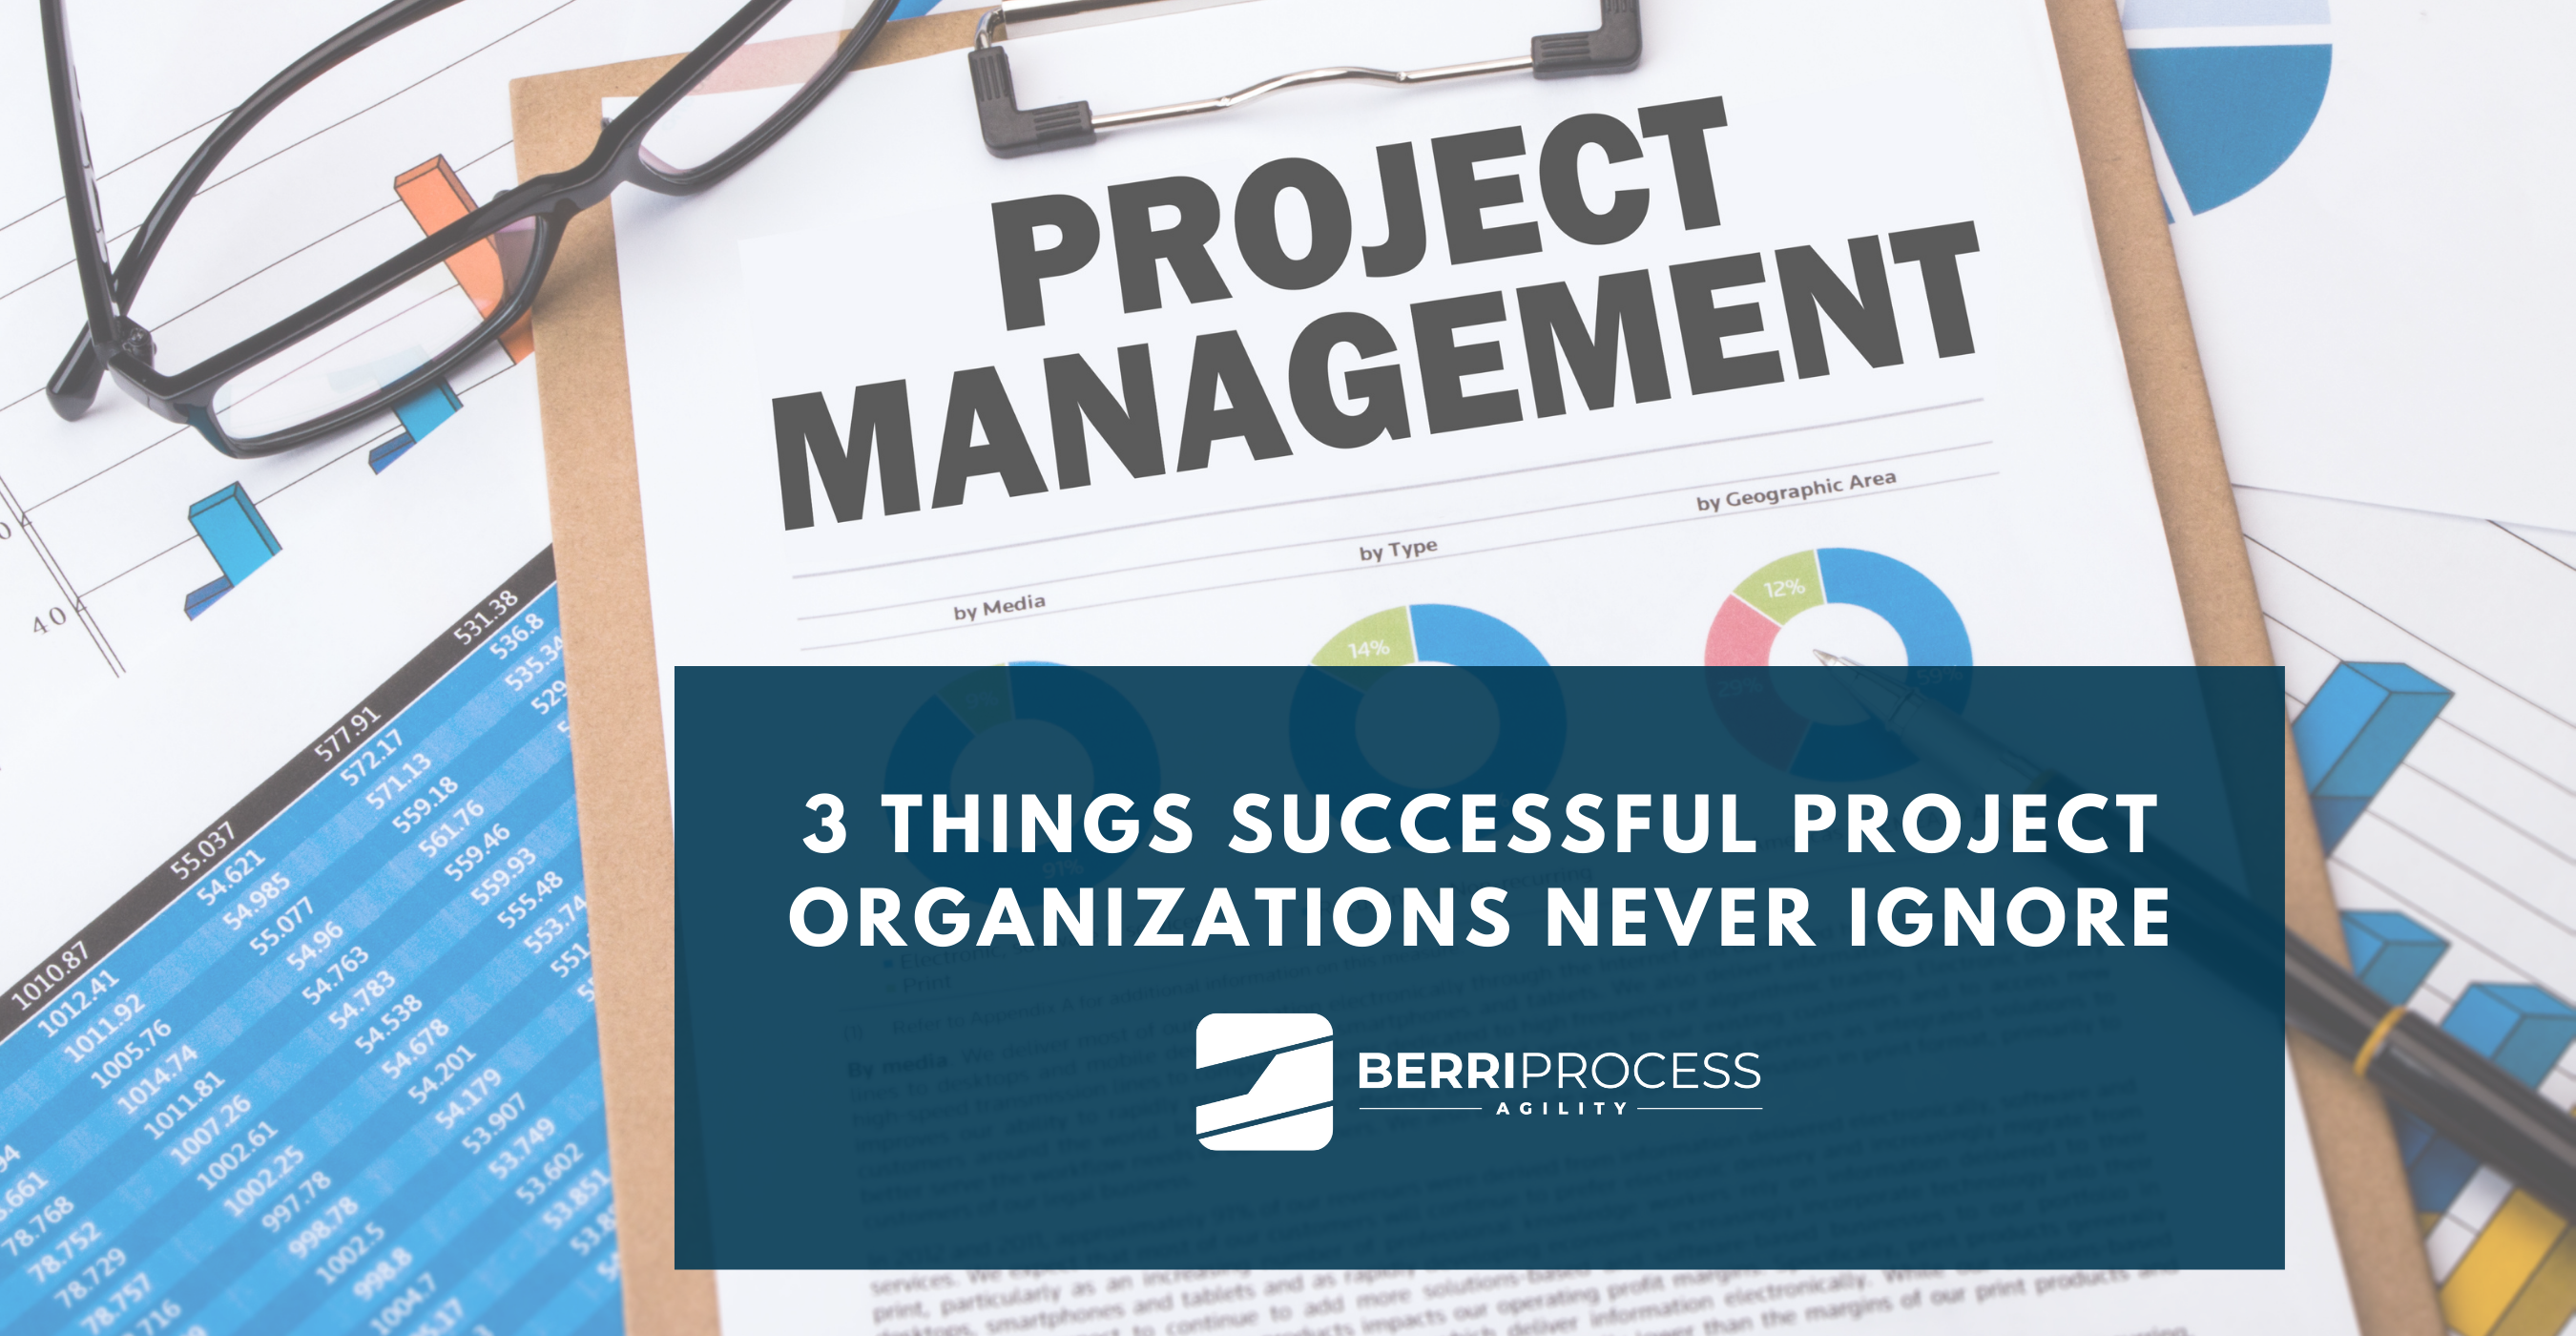 Image 3 3 THINGS SUCCESSFUL PROJECT ORGANIZATIONS NEVER IGNORE